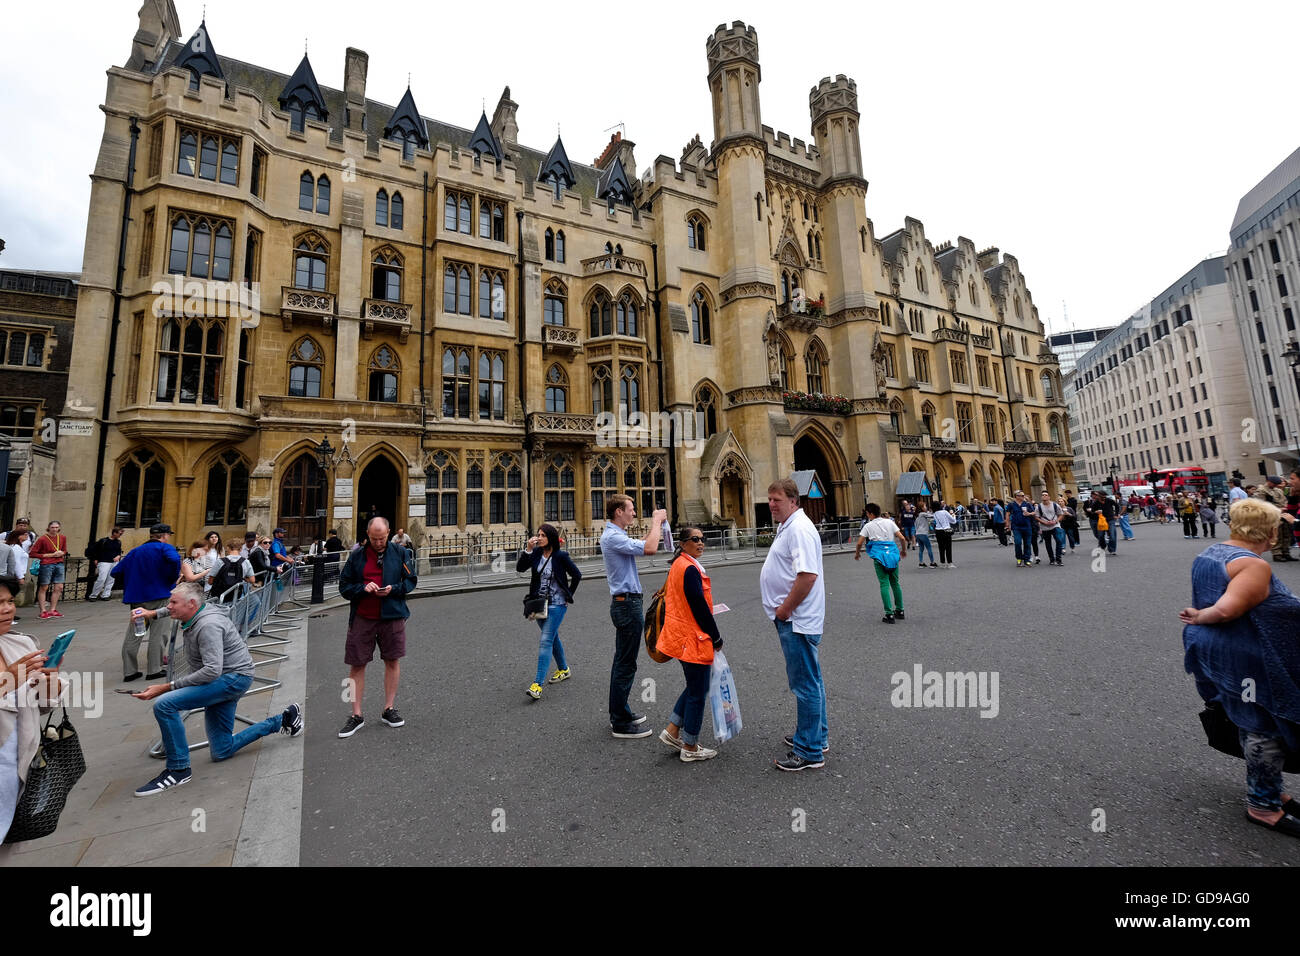 Dean's Yard, Westminster, a London landmark - Stock Image